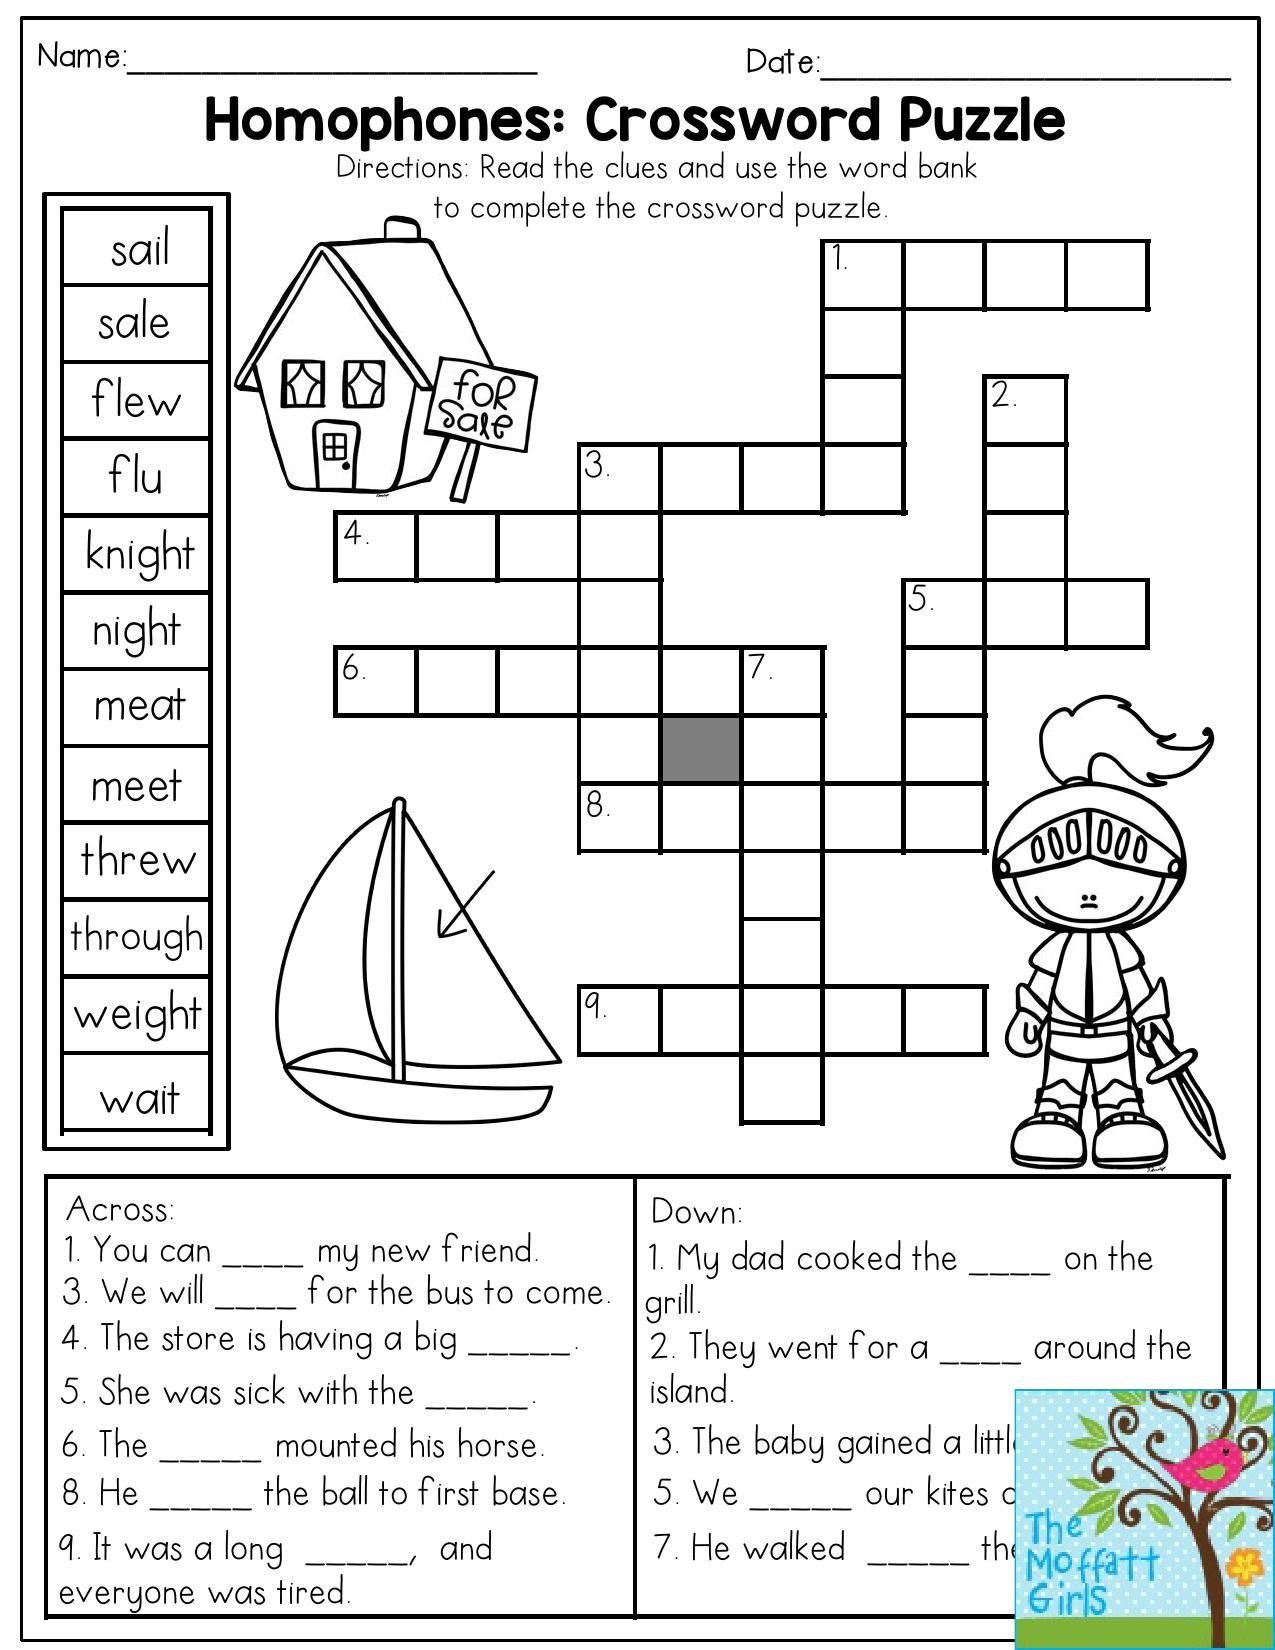 Homophones Worksheets for Grade 2 Homophones Crossword Puzzle Read the Clues and Use the